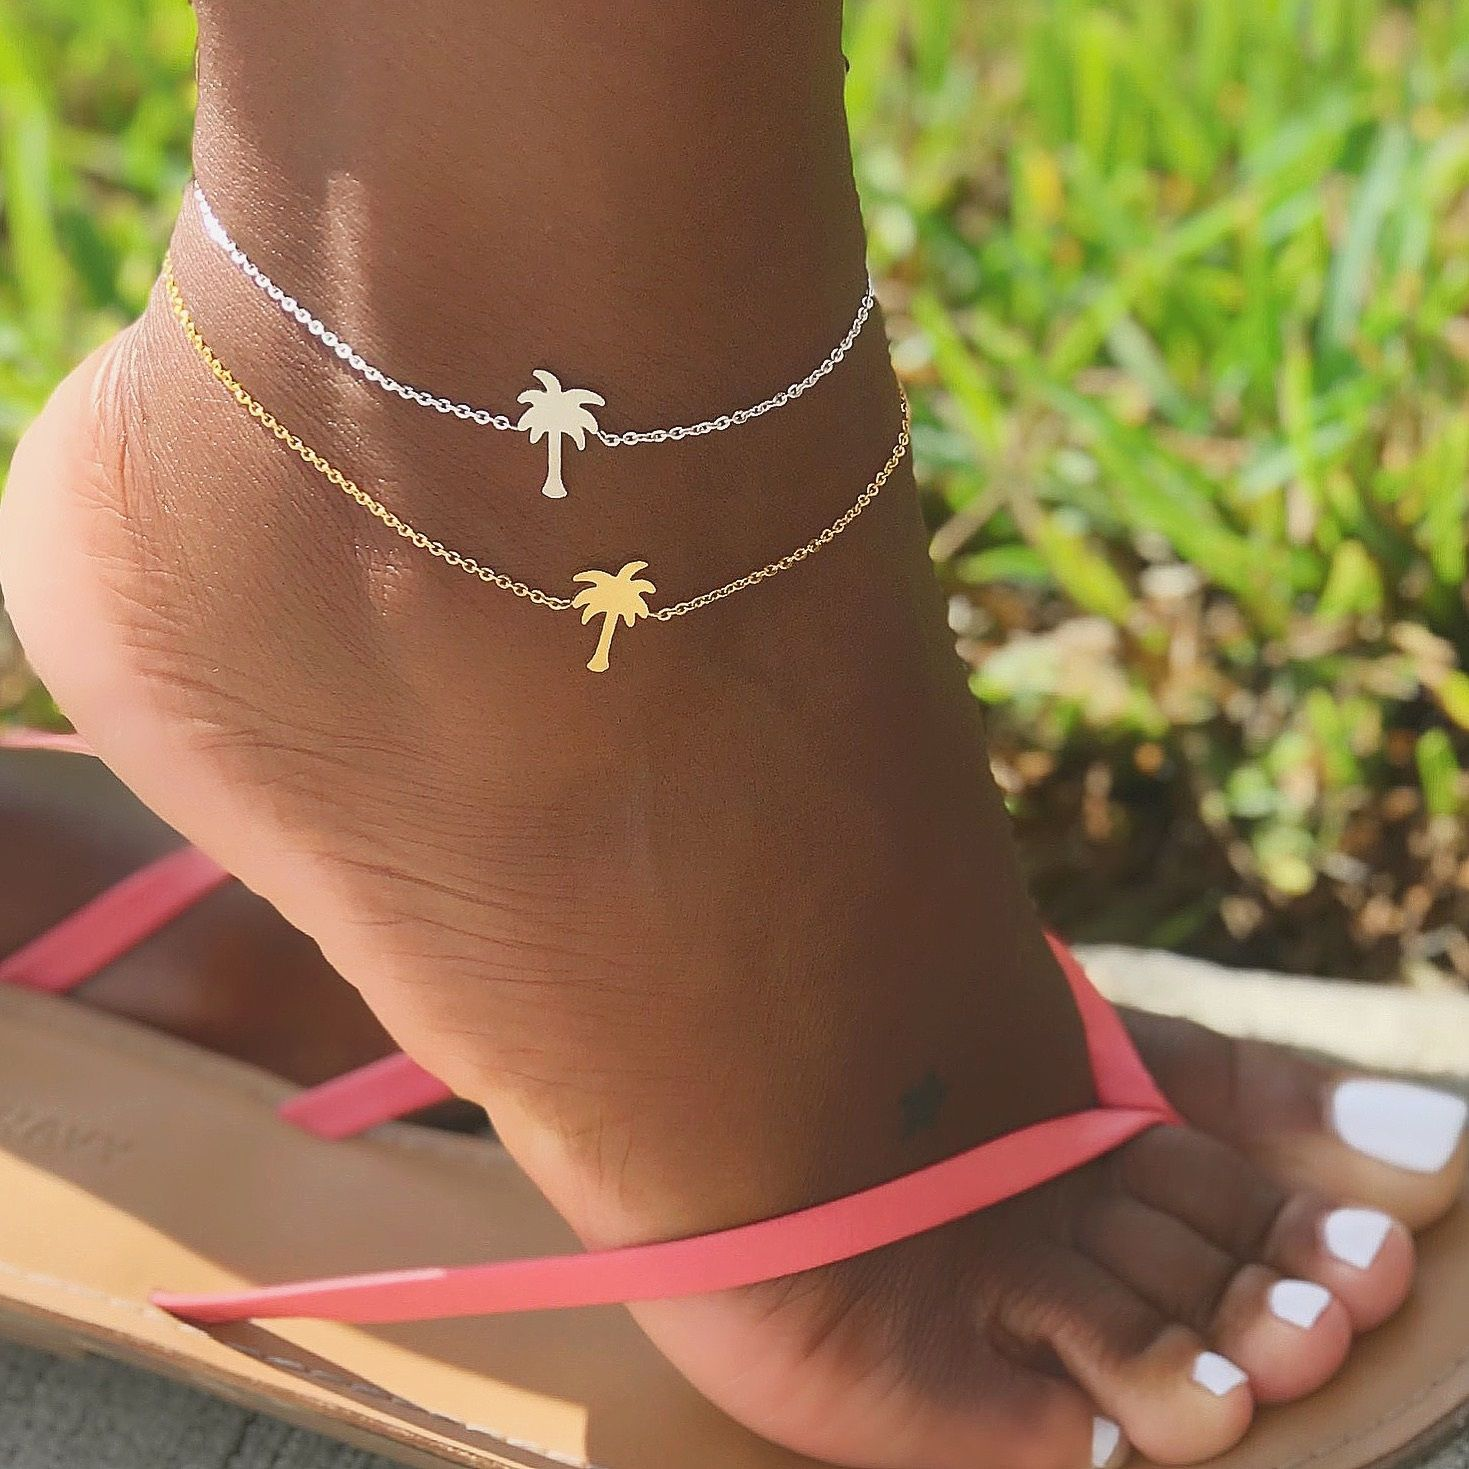 Pinele Palm Tree Anklets